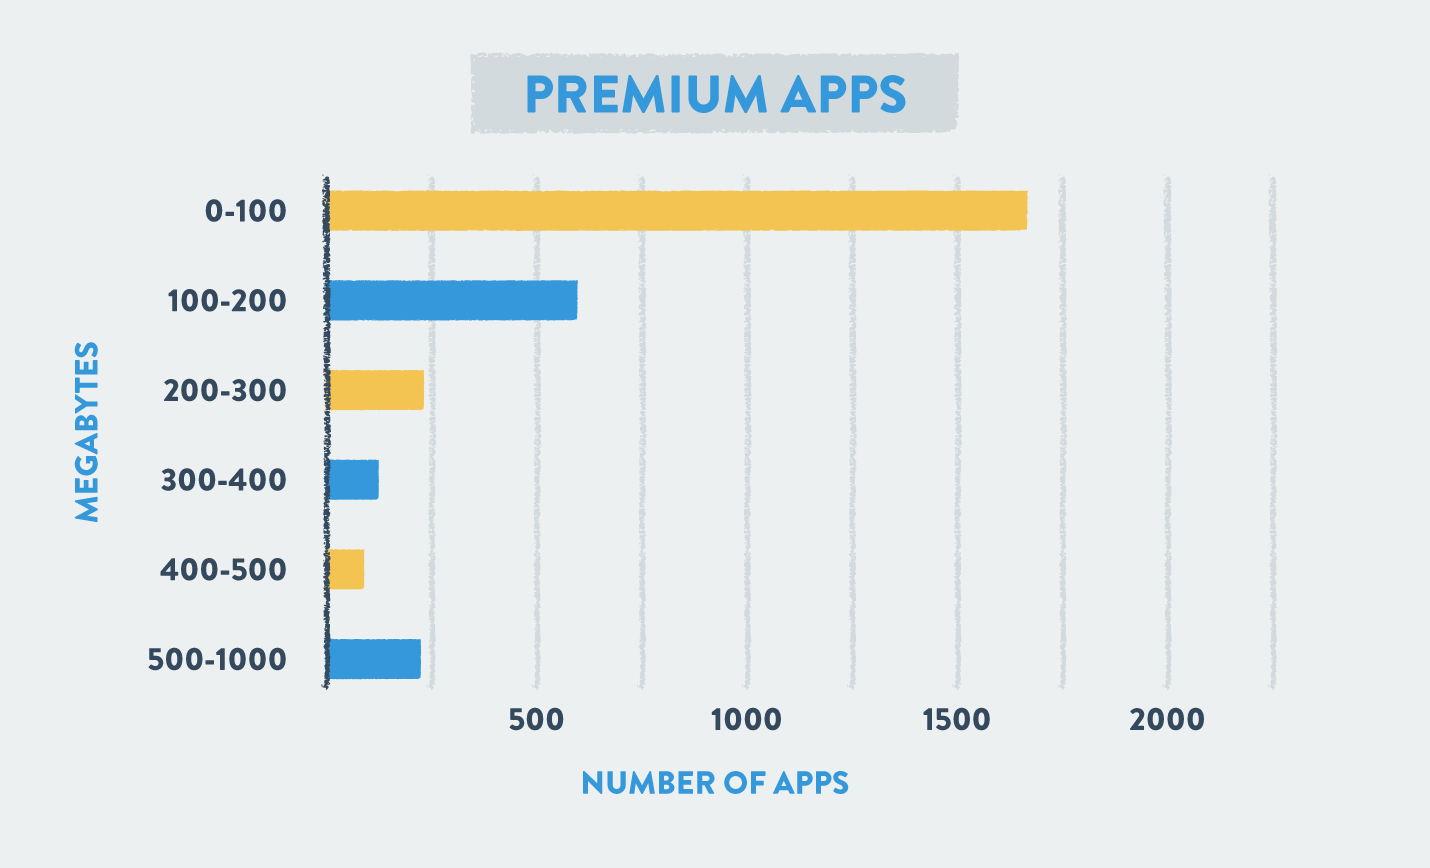 package size of premium apps in megabytes